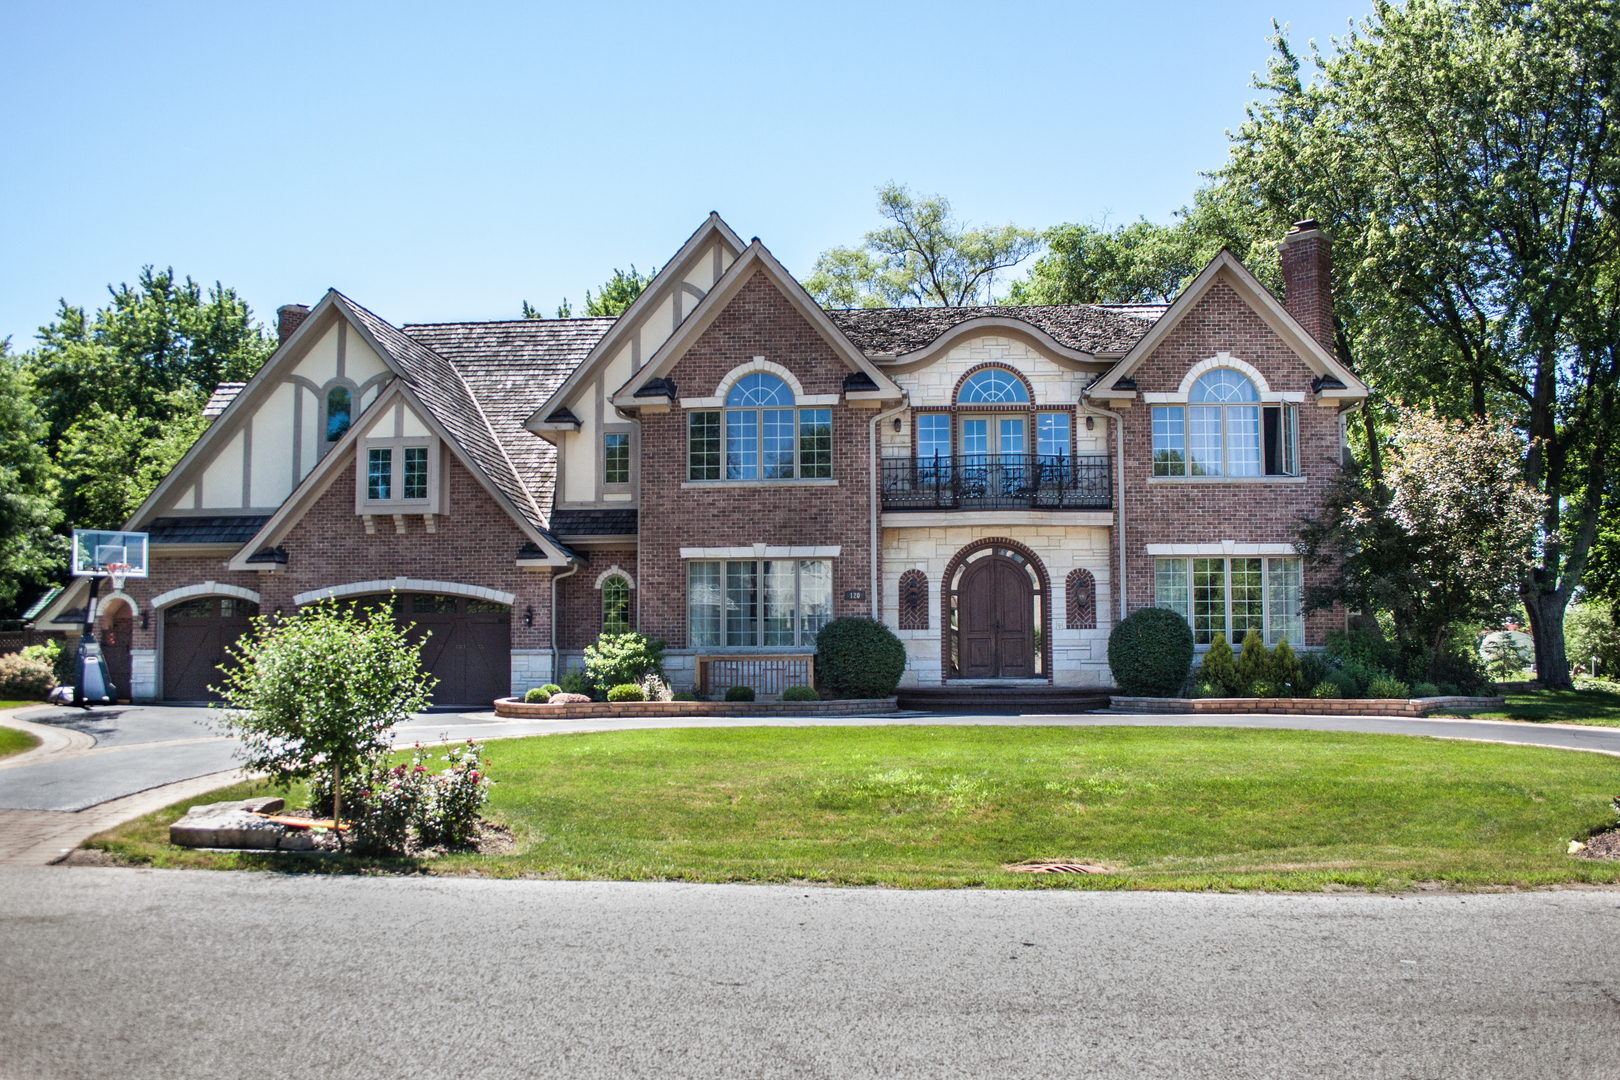 120 CONSTANCE Lane, Northbrook in Cook County, IL 60062 Home for Sale